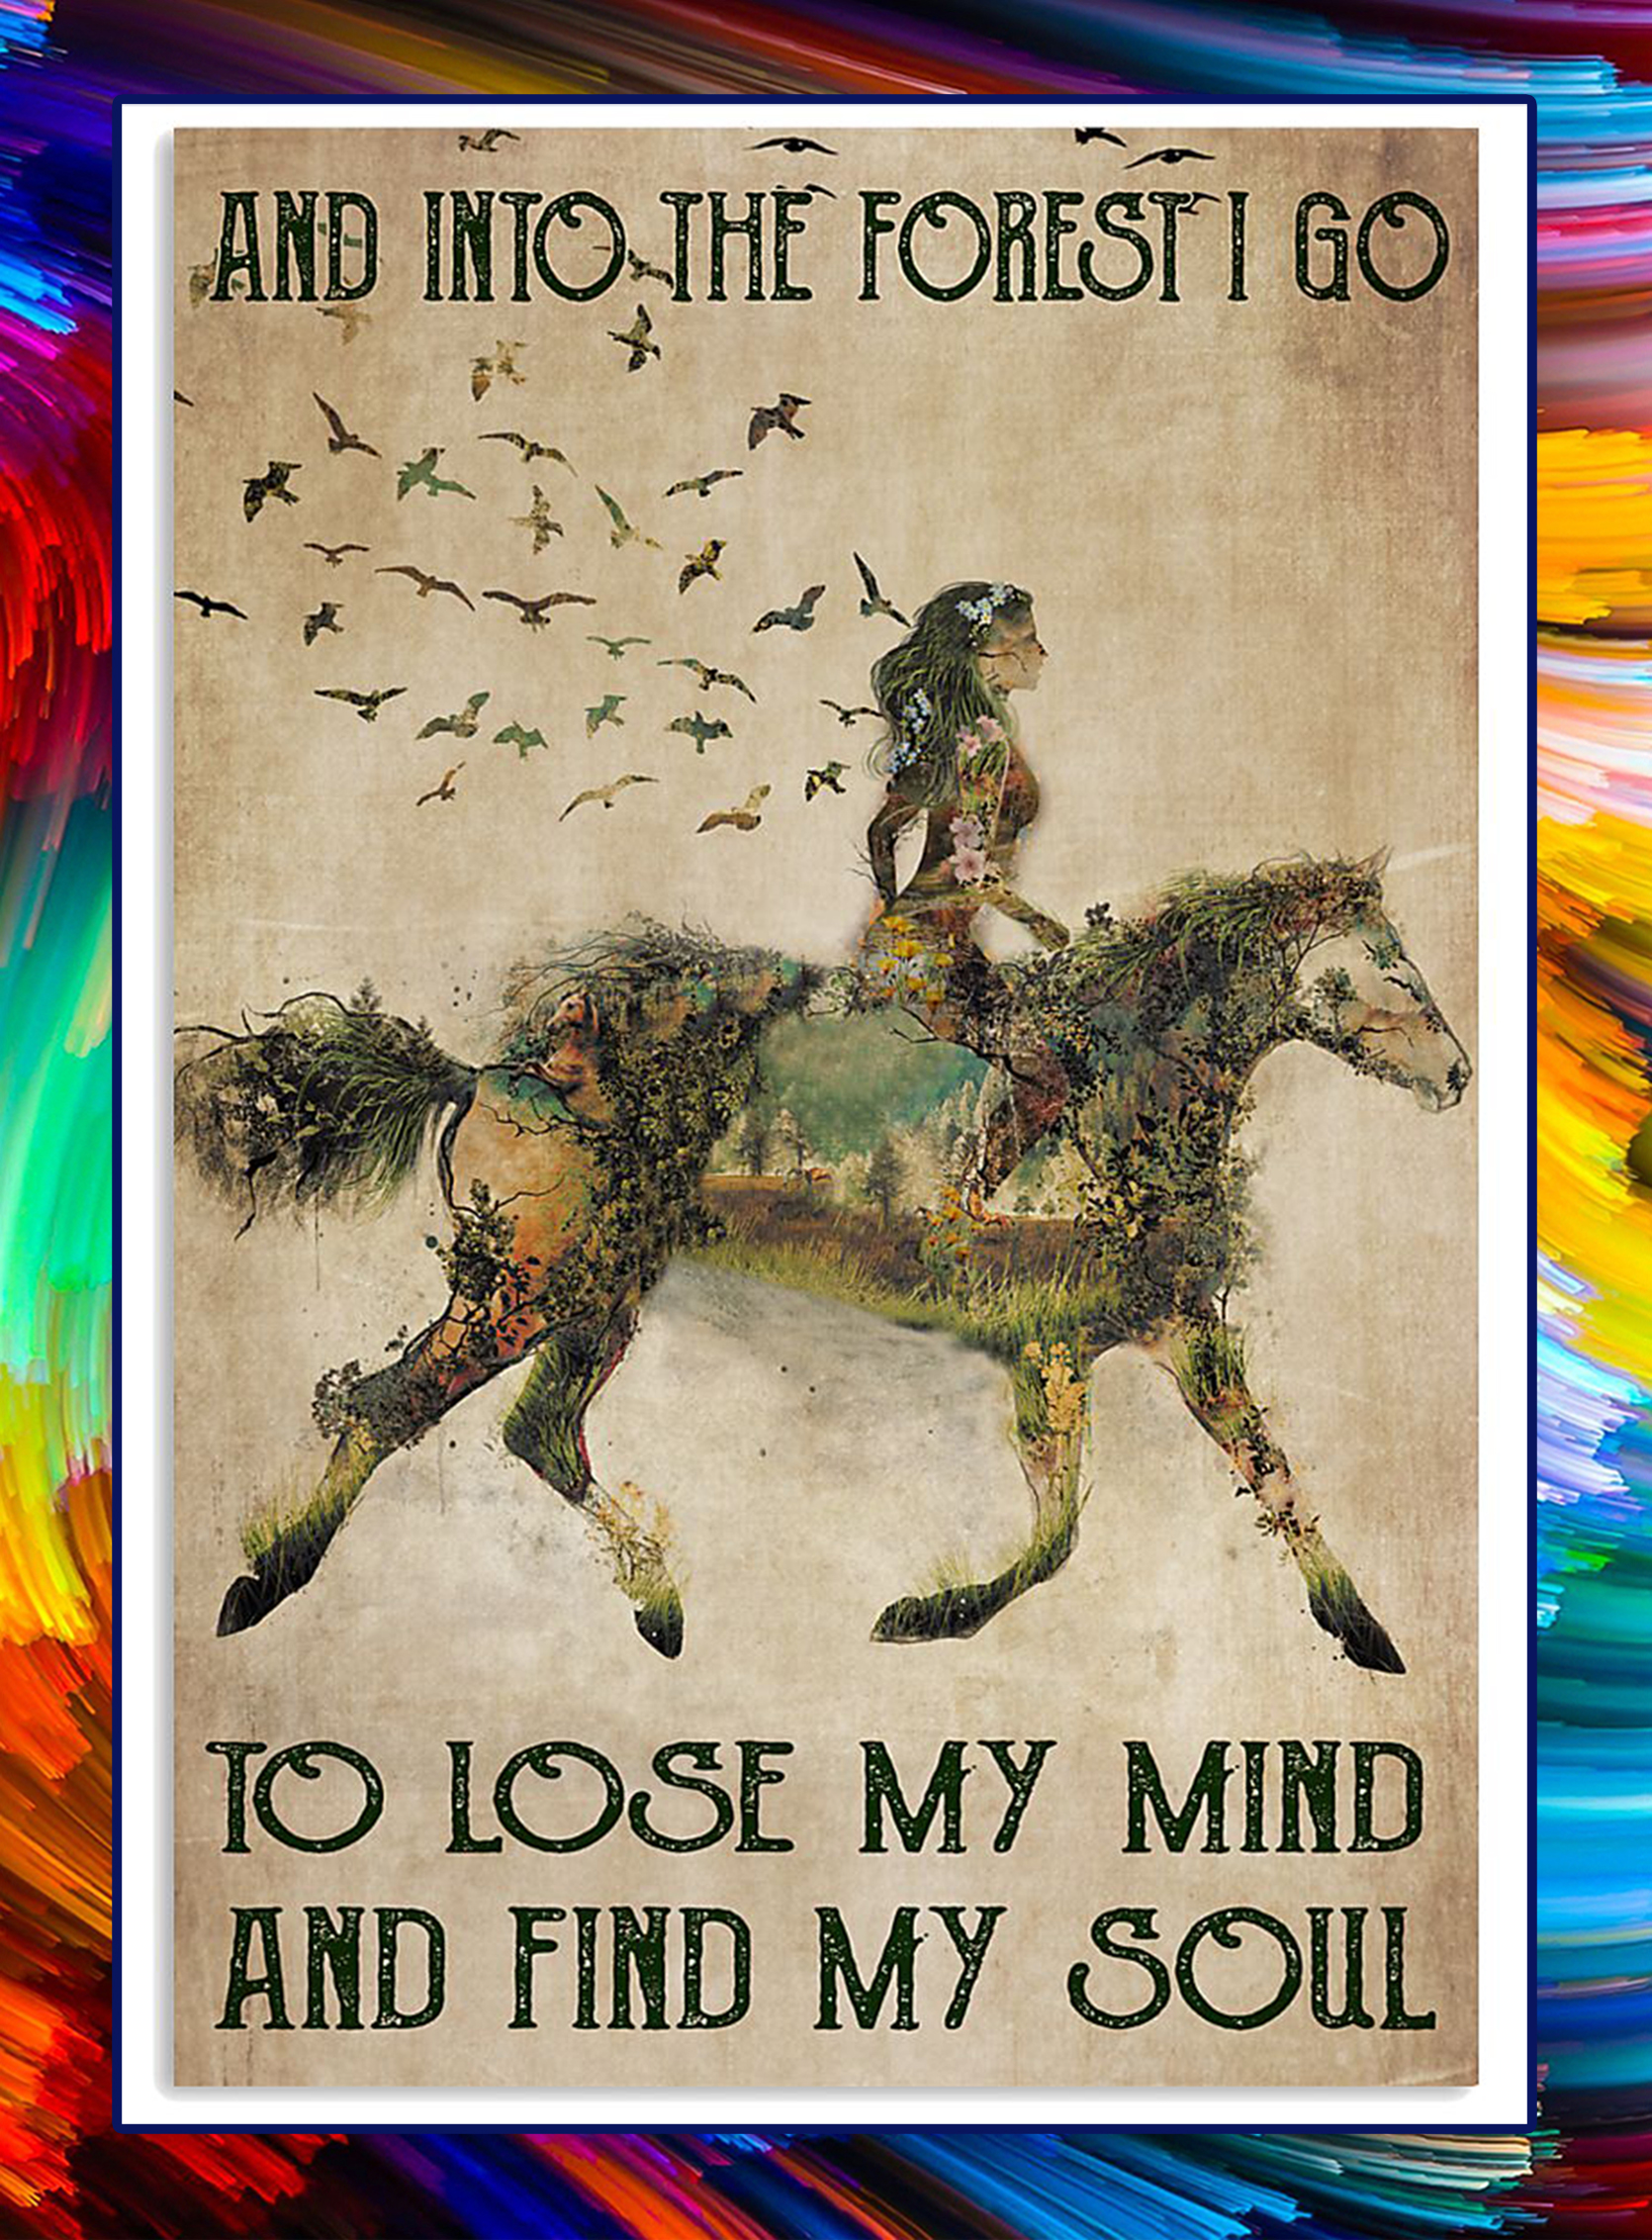 Horse And into forest i go to lose my mind and find my soul poster - A1